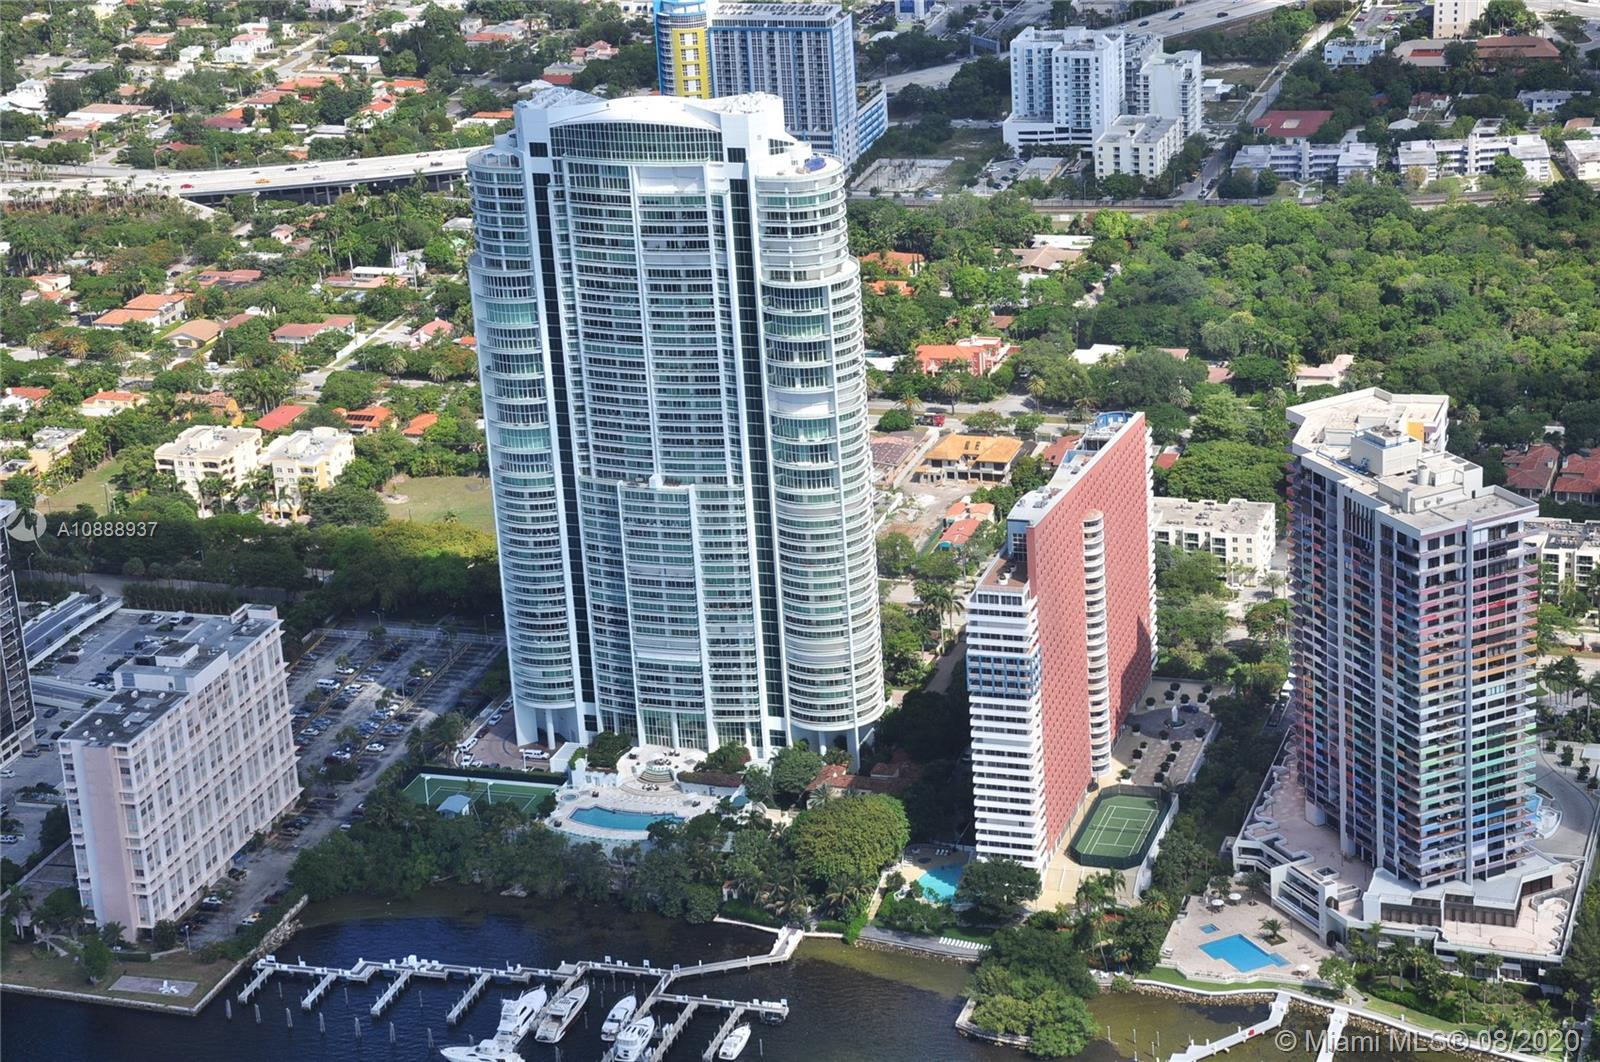 Santa Maria on Brickell is a well stablished residential building with great reputation in South Flo